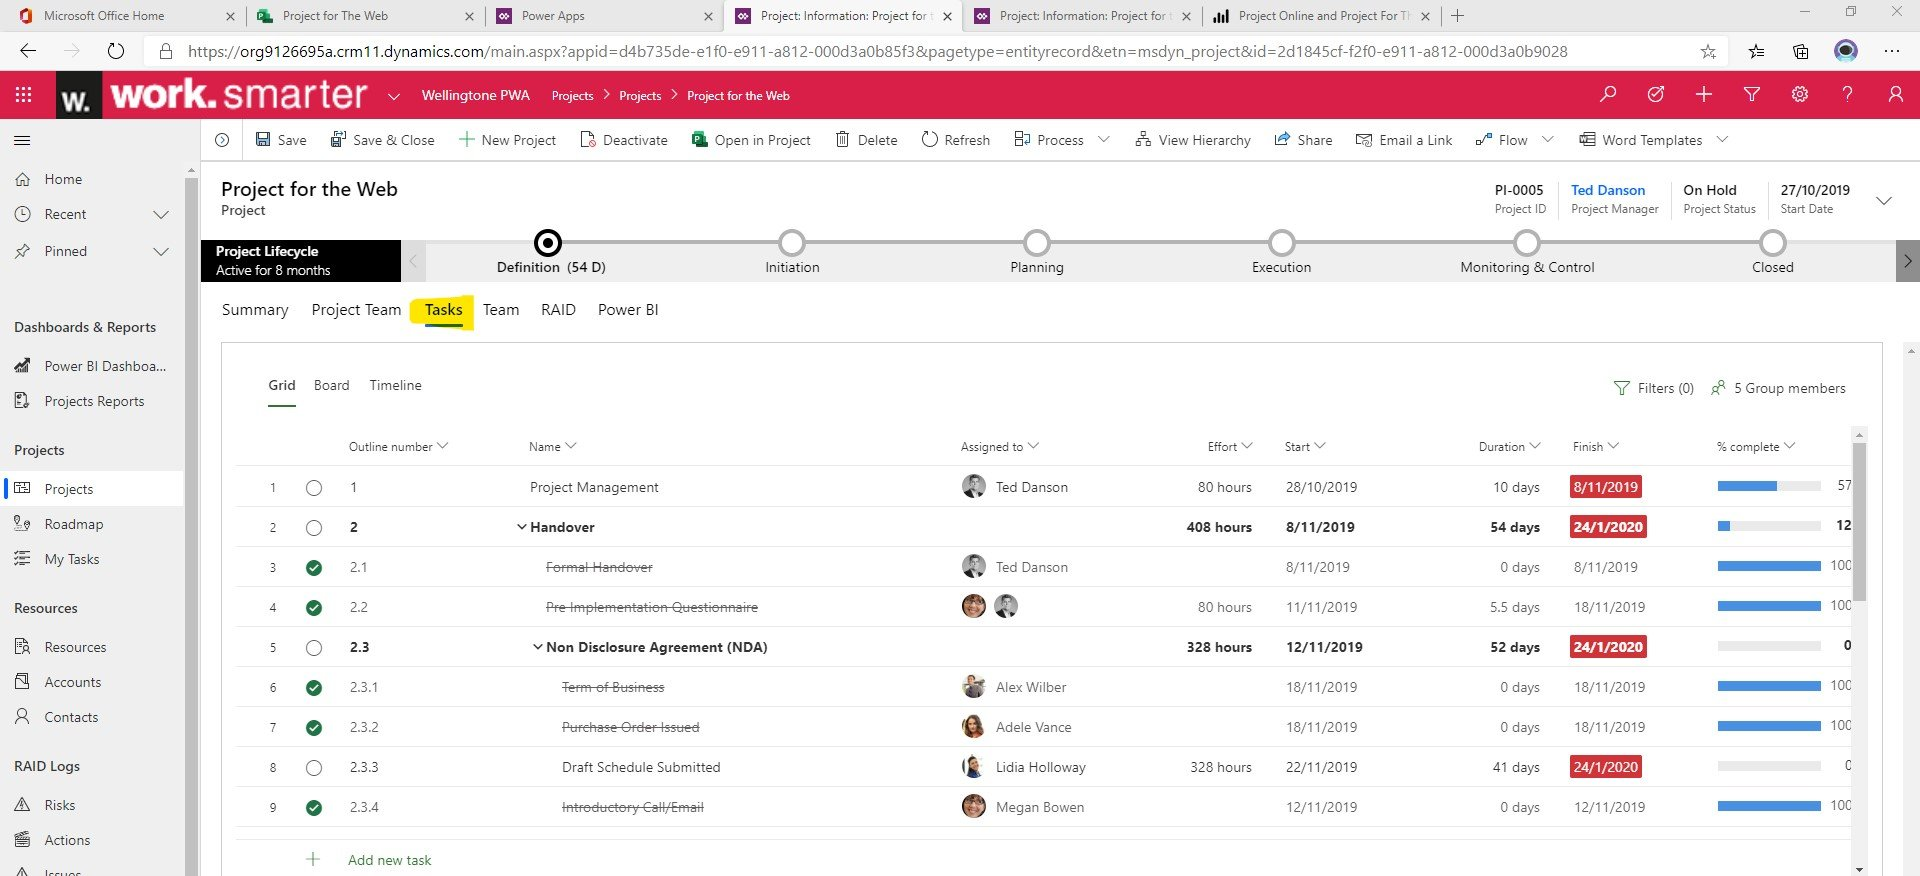 Tasks in Project for the Web PWA